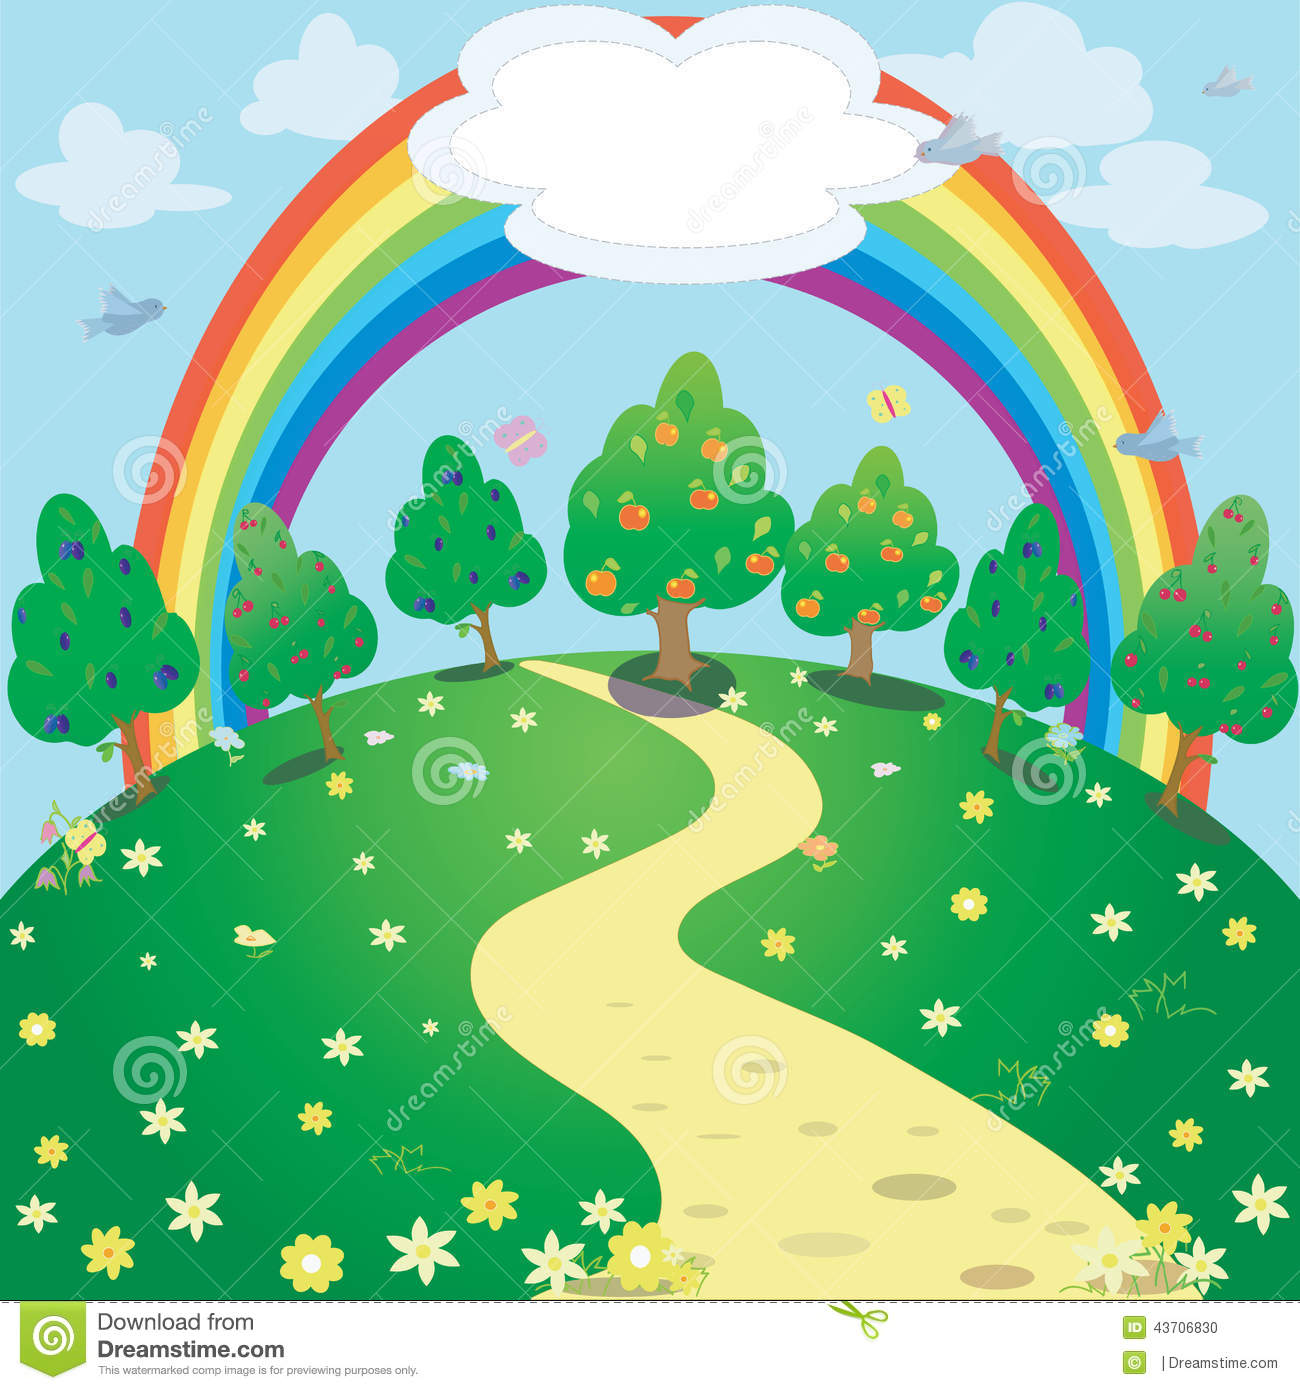 Download Background Of Rainbow And Garden Vector Fantasy Illustration Stock